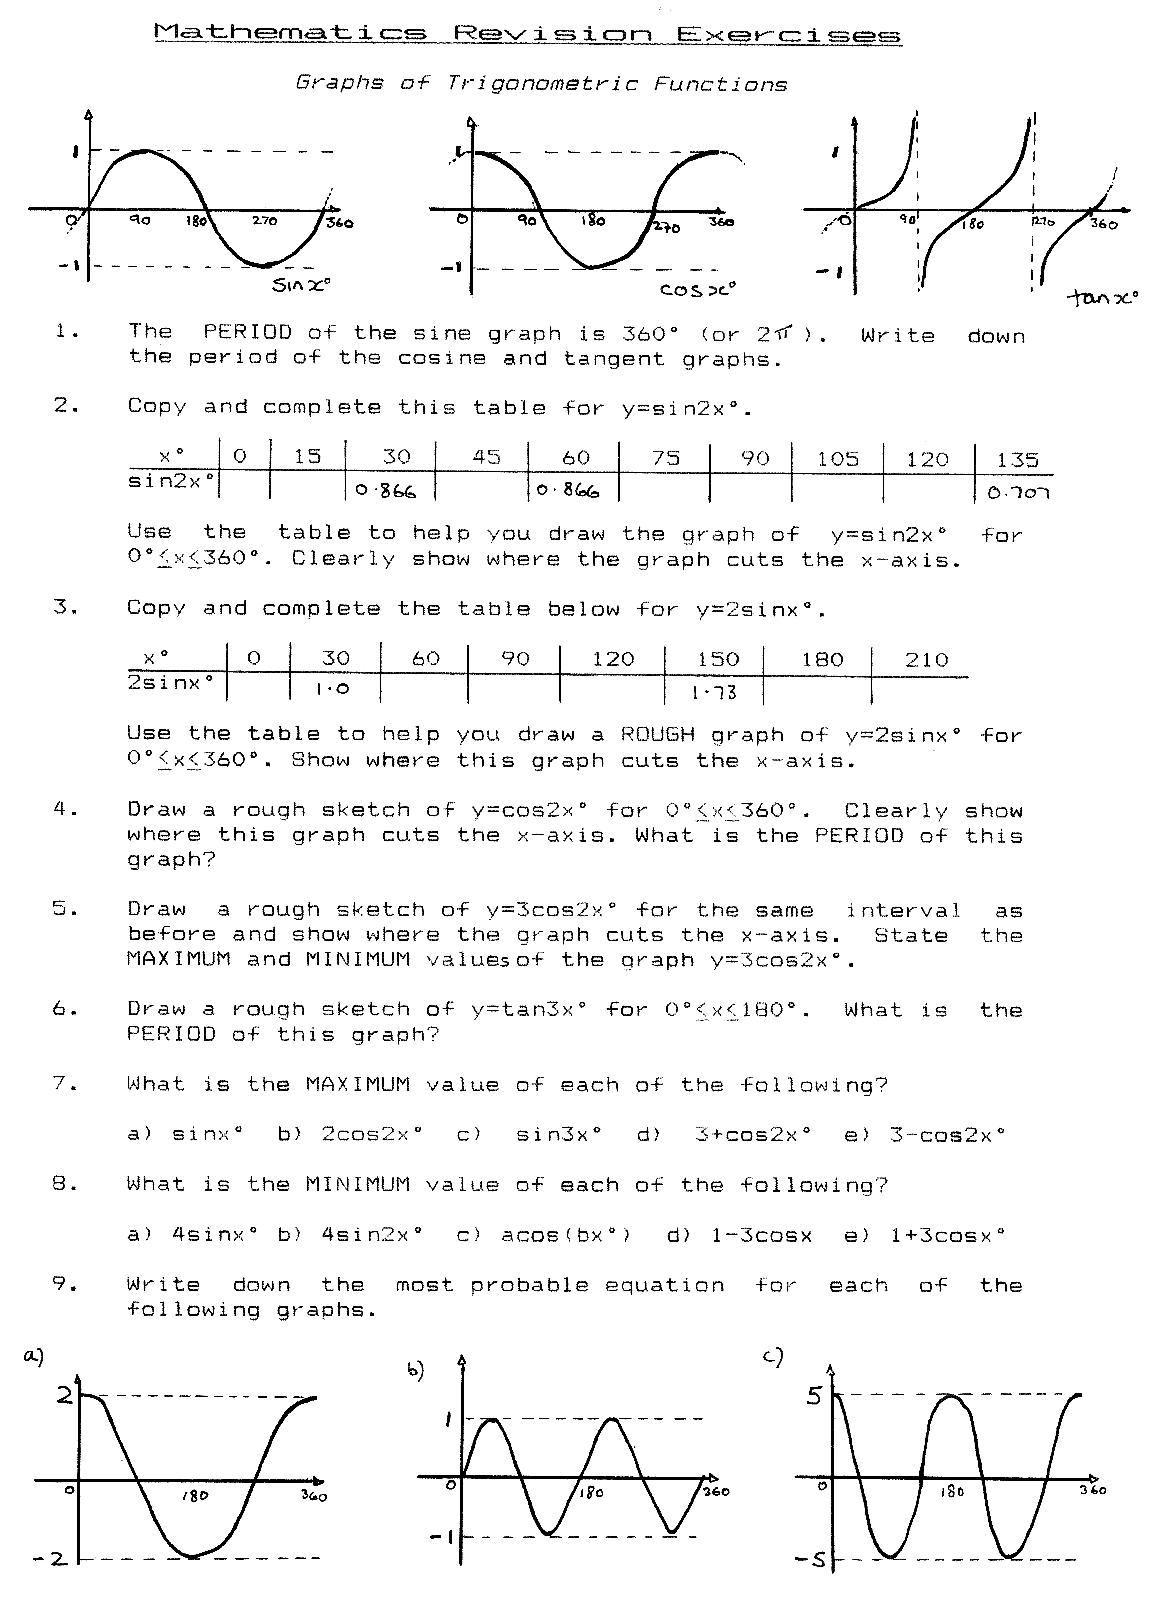 Inverse Functions And Relations Worksheet Answers 6 2